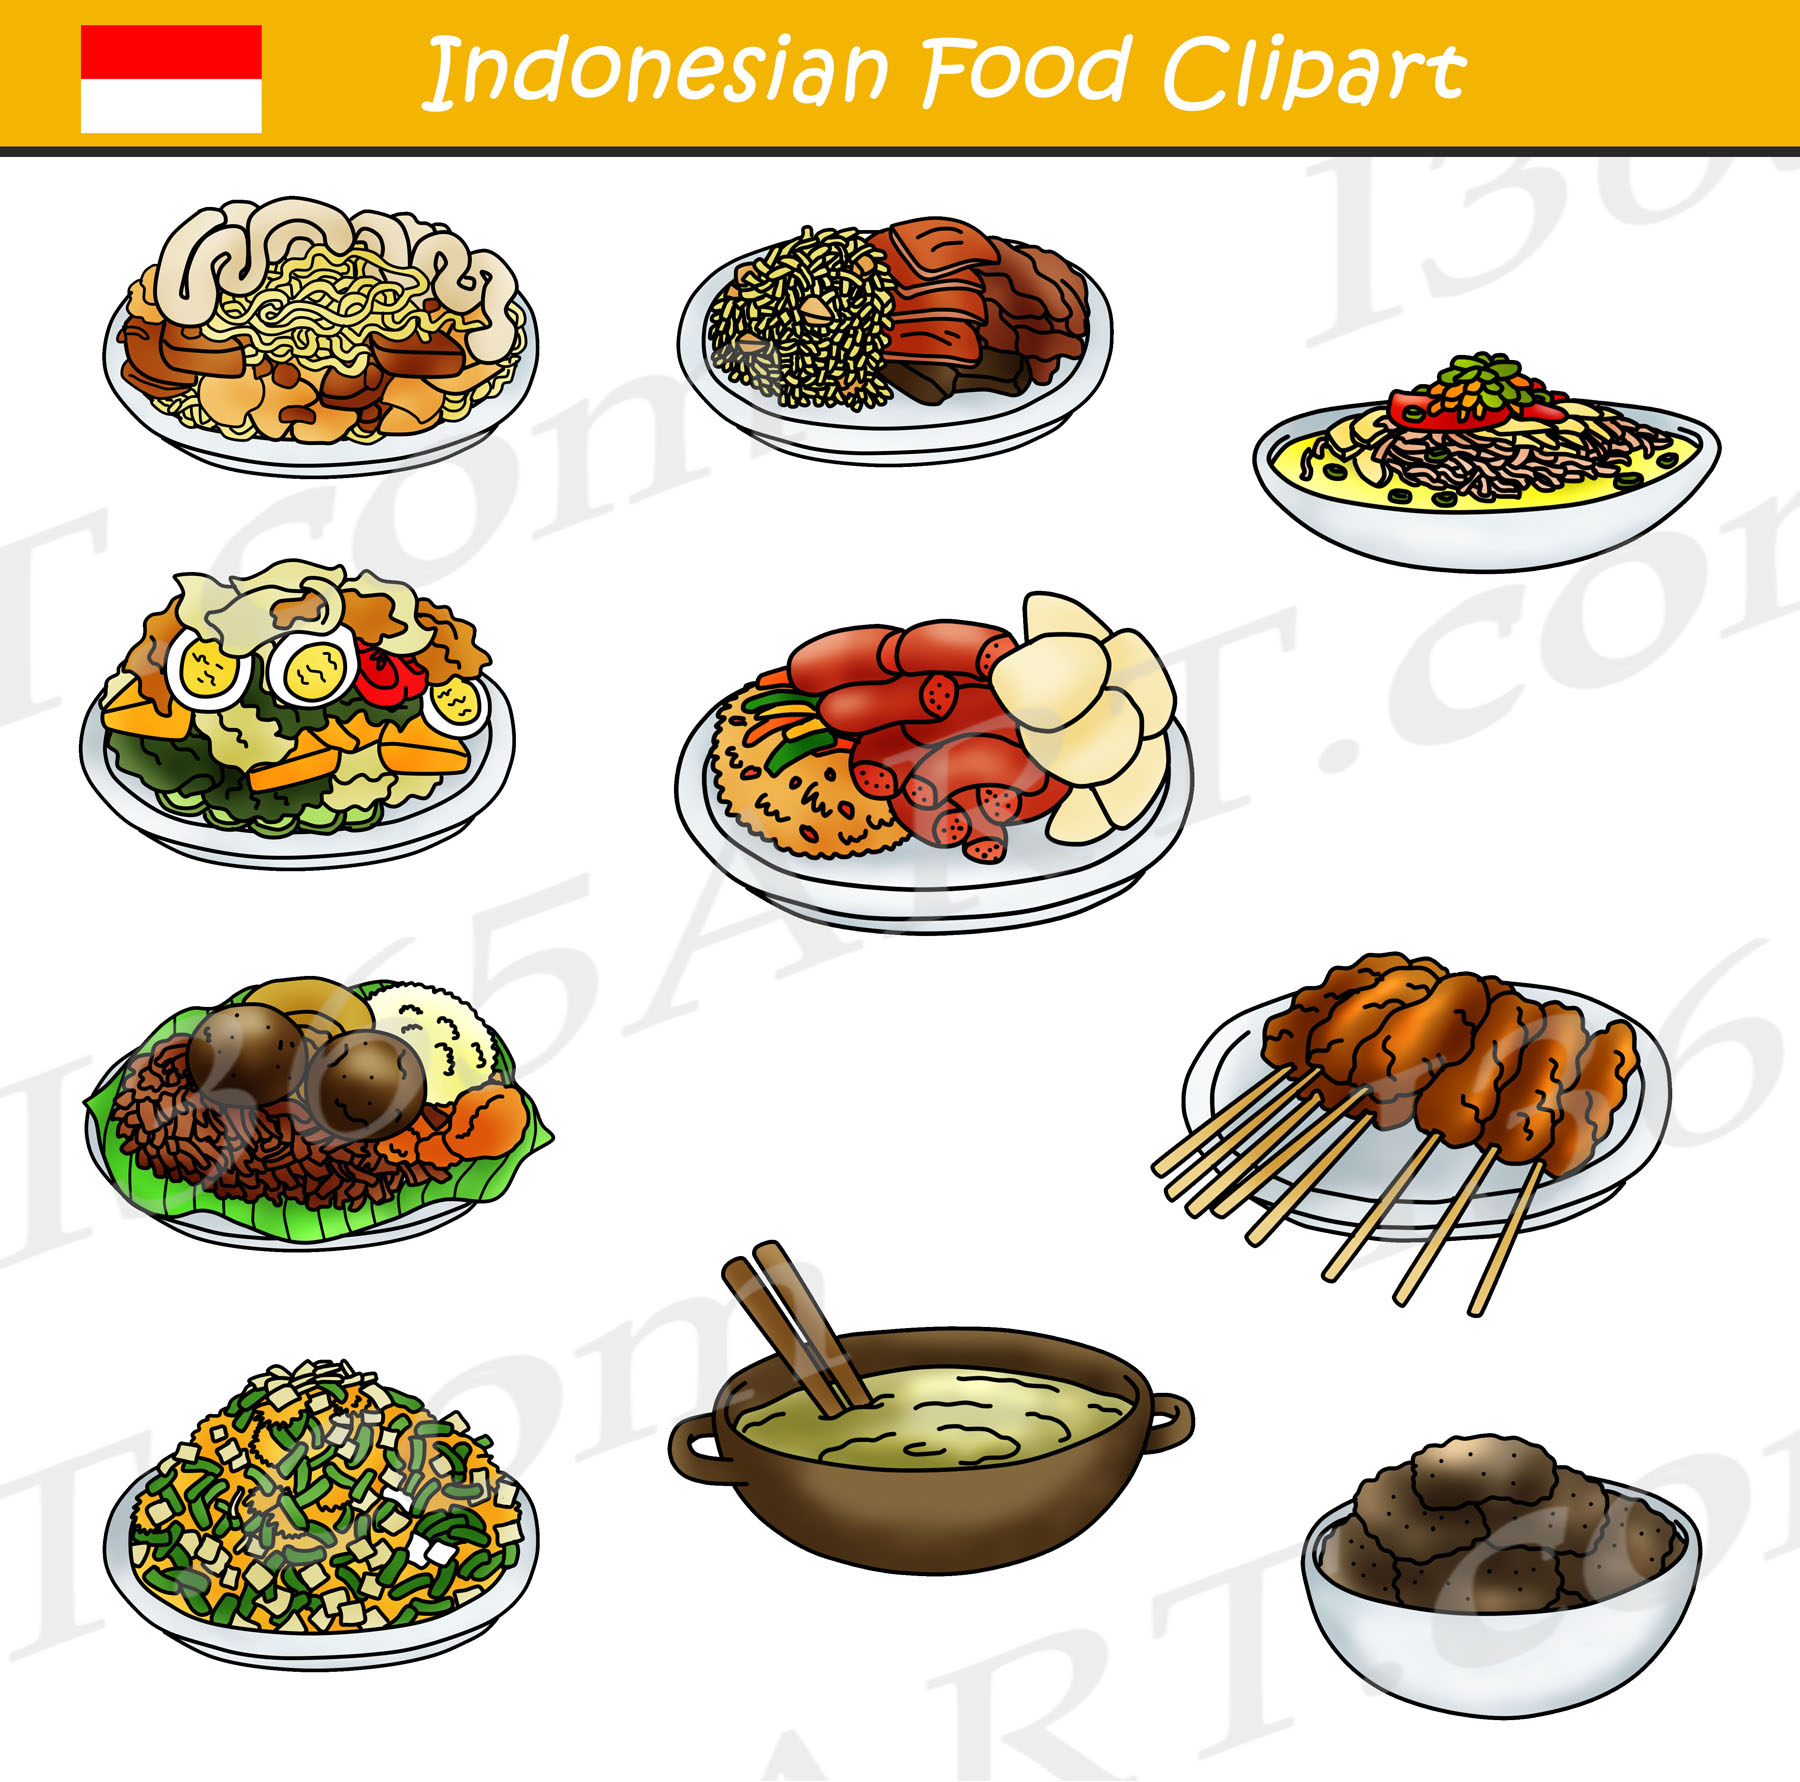 Vegetarian food images clipart picture download Indonesian Food Clipart Bundle picture download